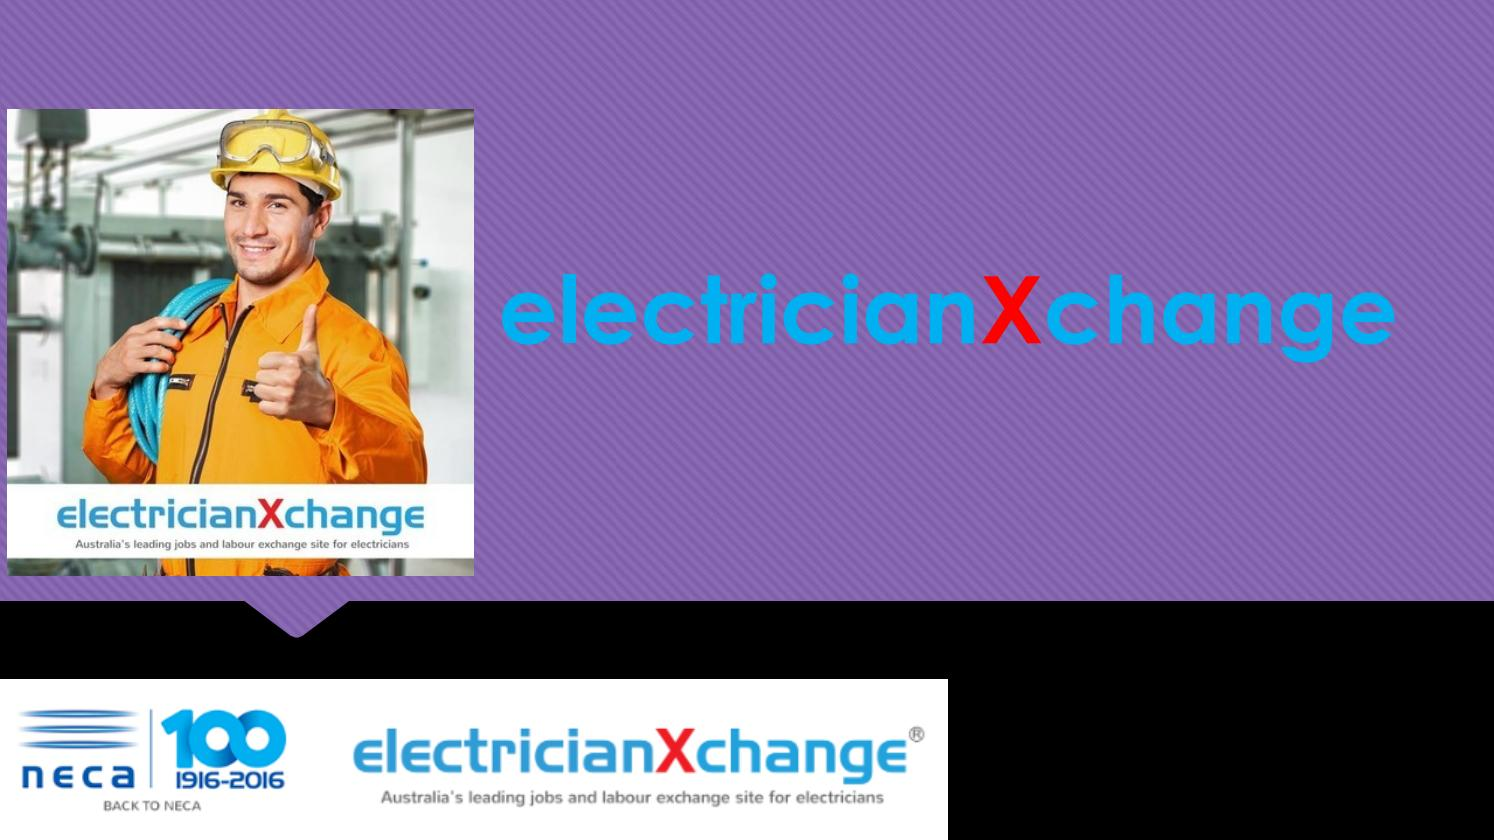 Electrician Jobs in Melbourne-electricianXchange by Electrician